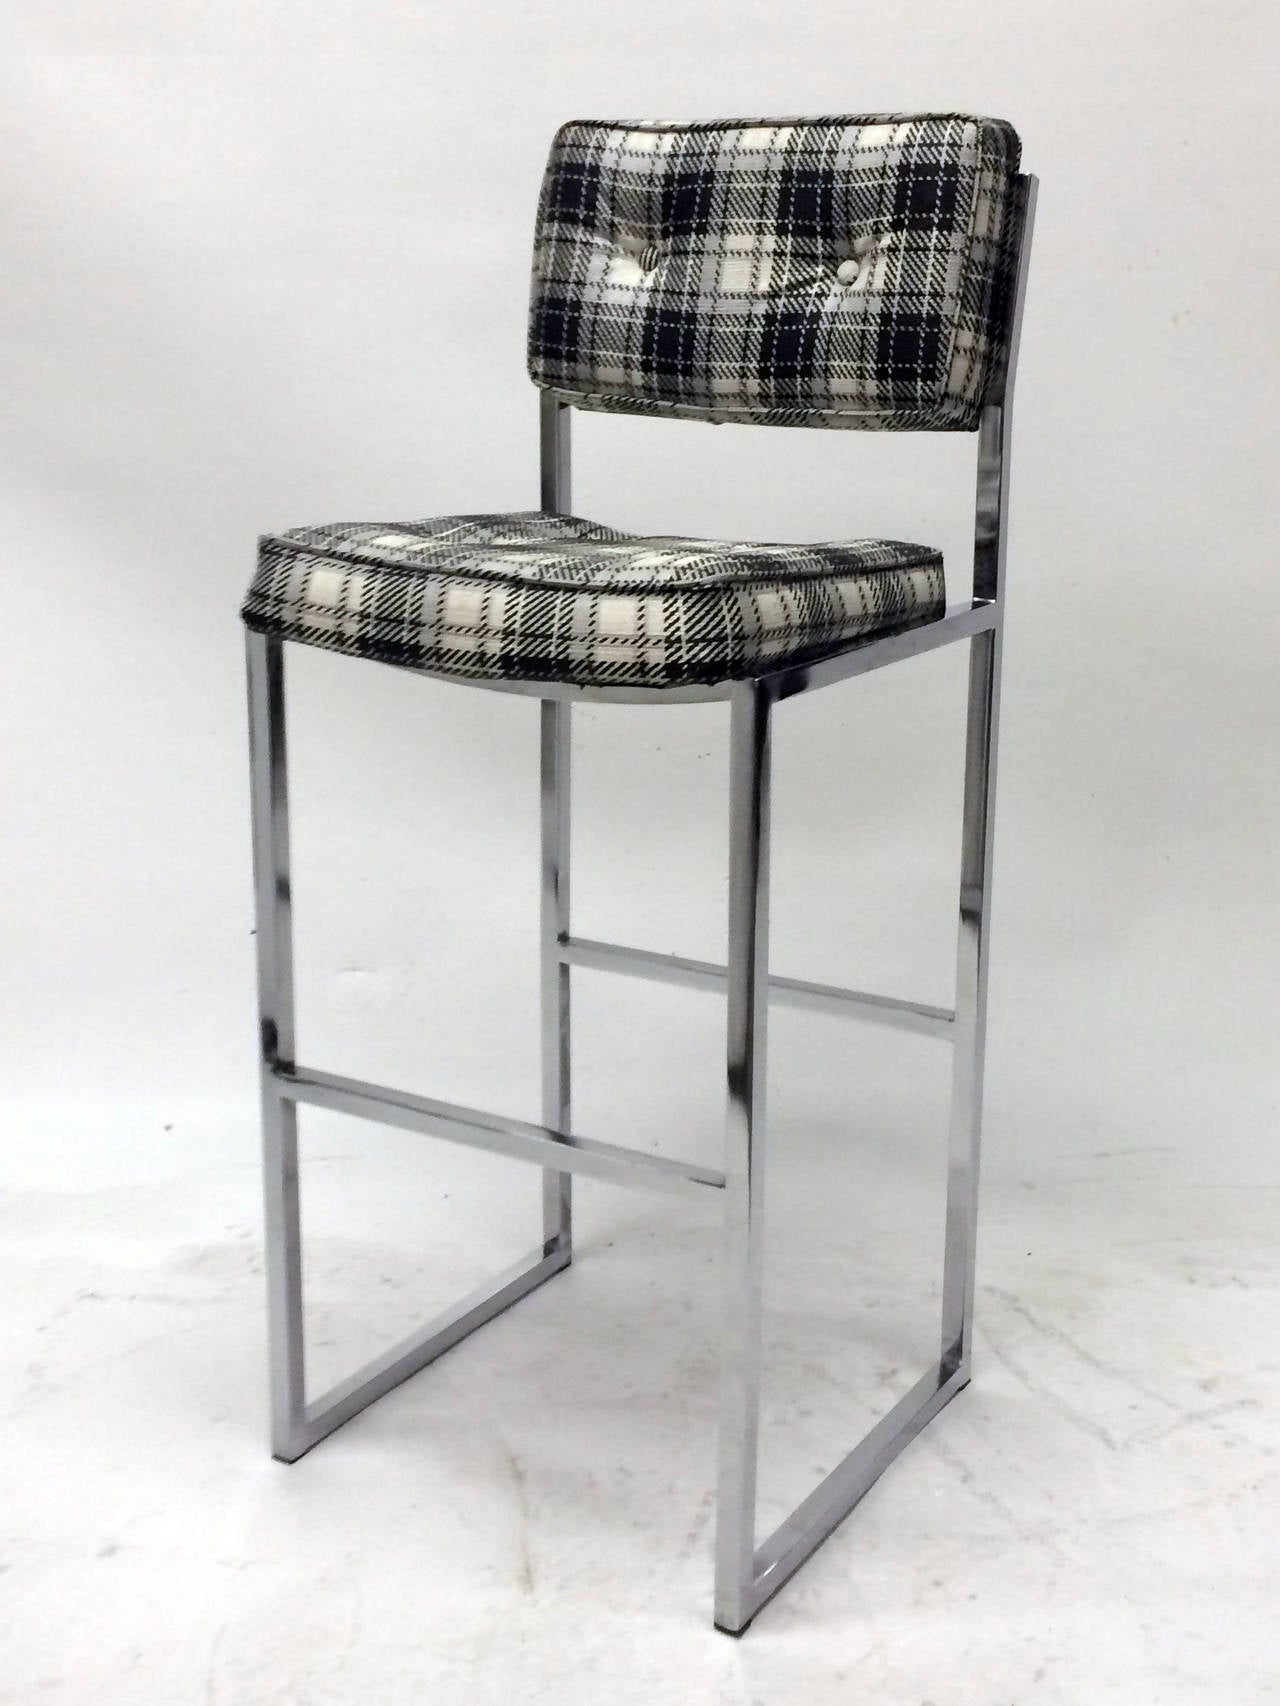 chromcraft chairs vintage toddler chair with tray midcentury bar stools at 1stdibs